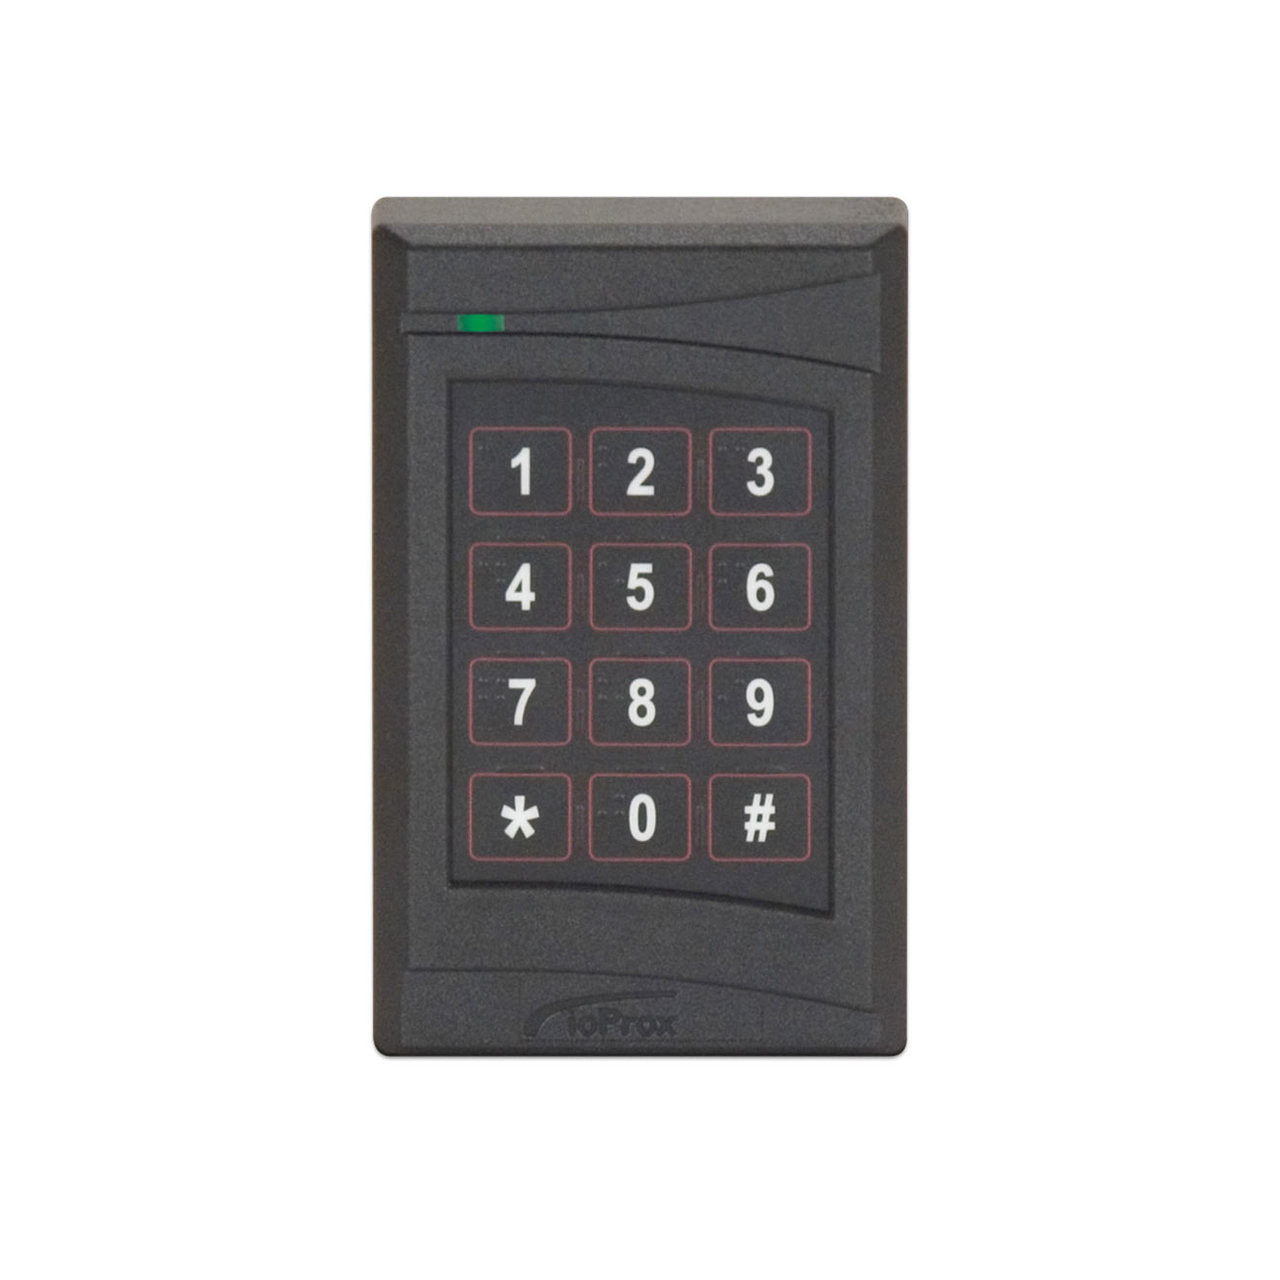 Kantech P325xsf Proximity Card Reader With Keypad